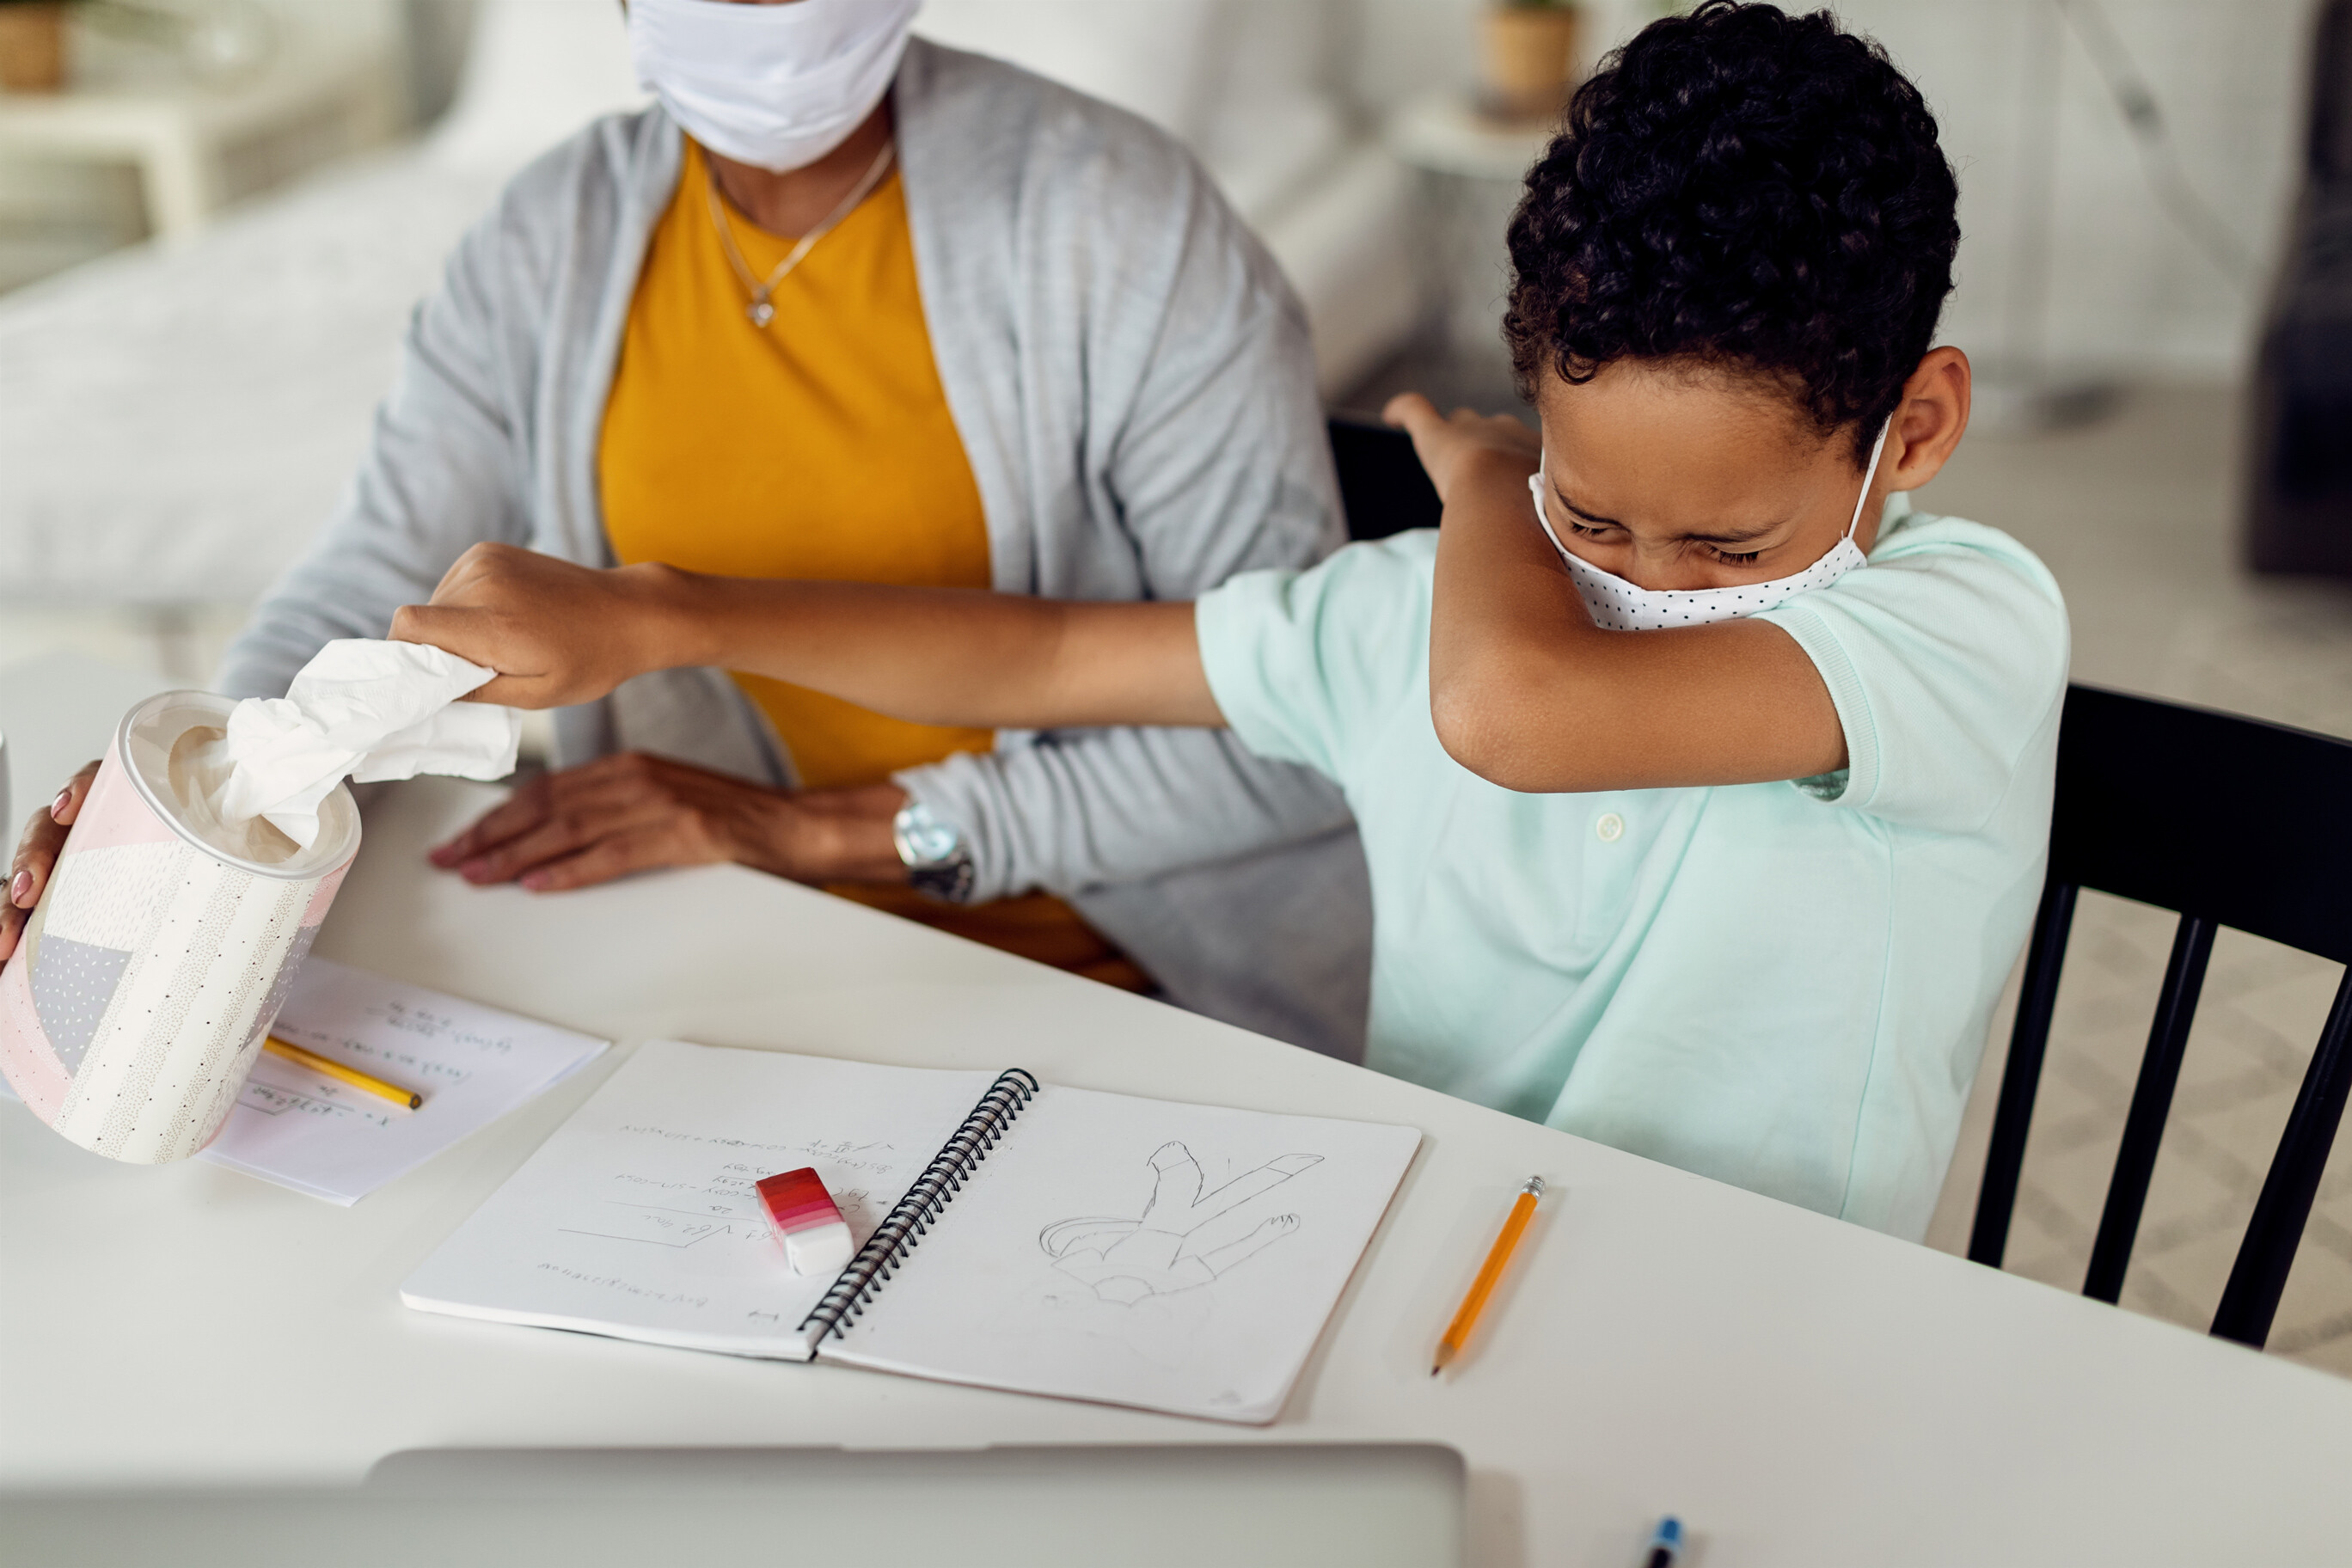 Covid-19 or the common cold? How to tell if your child contracted Covid-19 as school starts